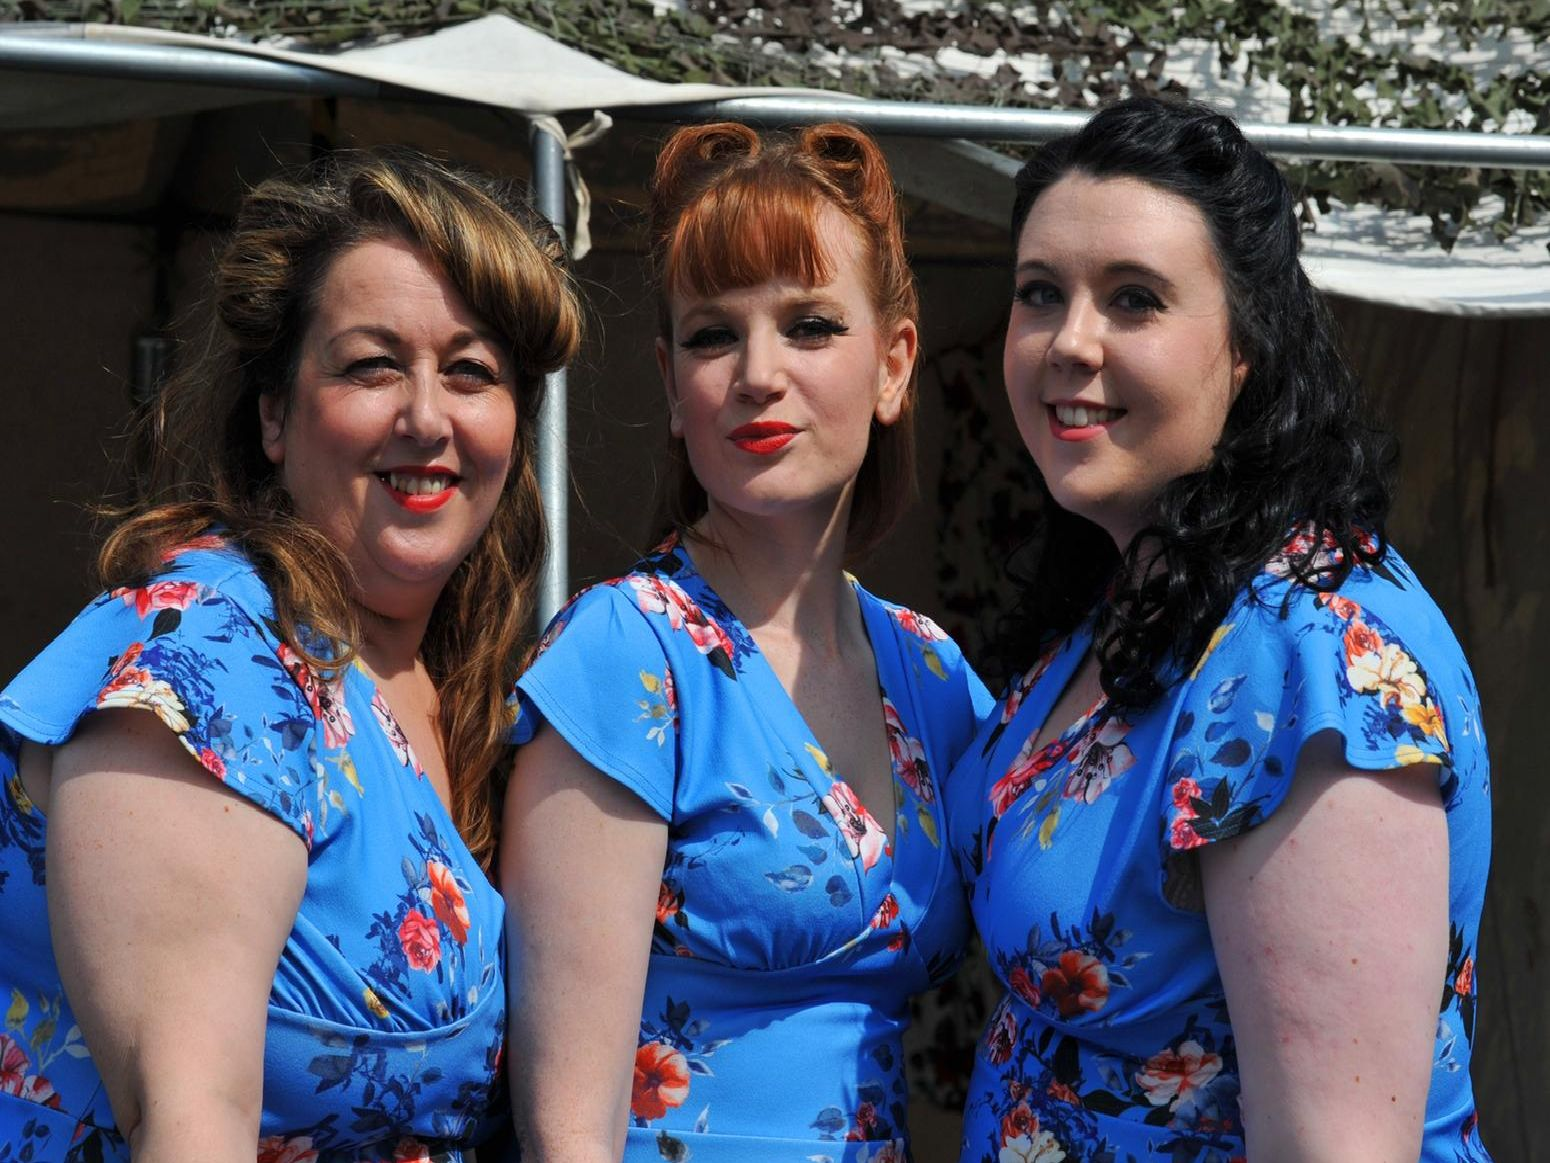 Dancing, singing, cycling, stalls, vehicles and more at the second annual 1940's Revival Weekend, held in and around Morecambe War Memorial Hall.